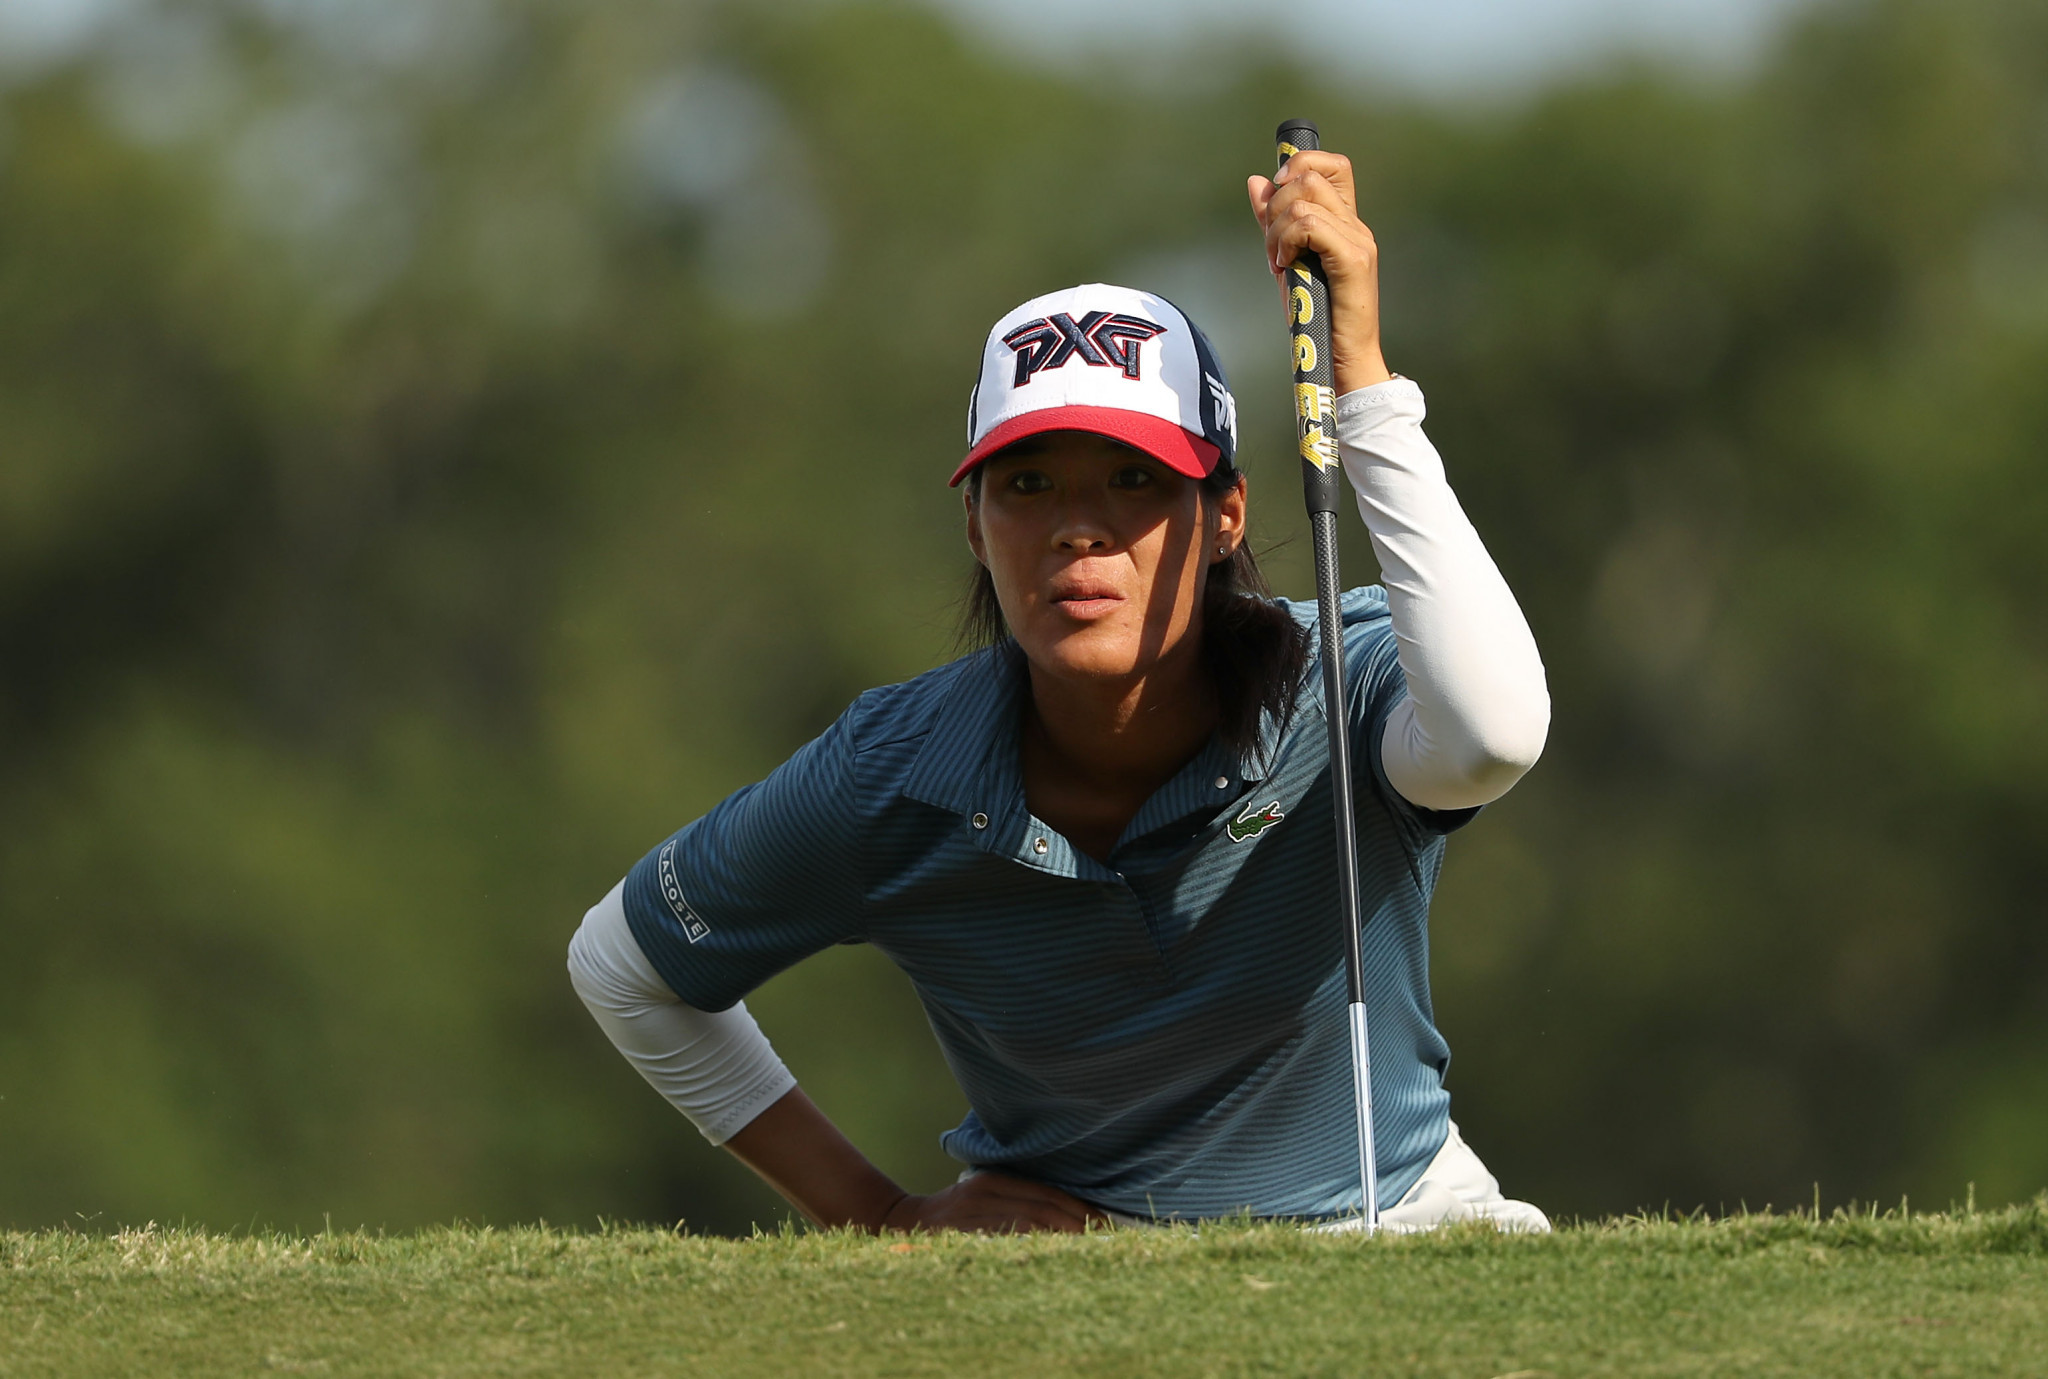 France's Céline Boutier lines up a putt on the 11th hole during the third round of the US Women's Open Championship ©Getty Images